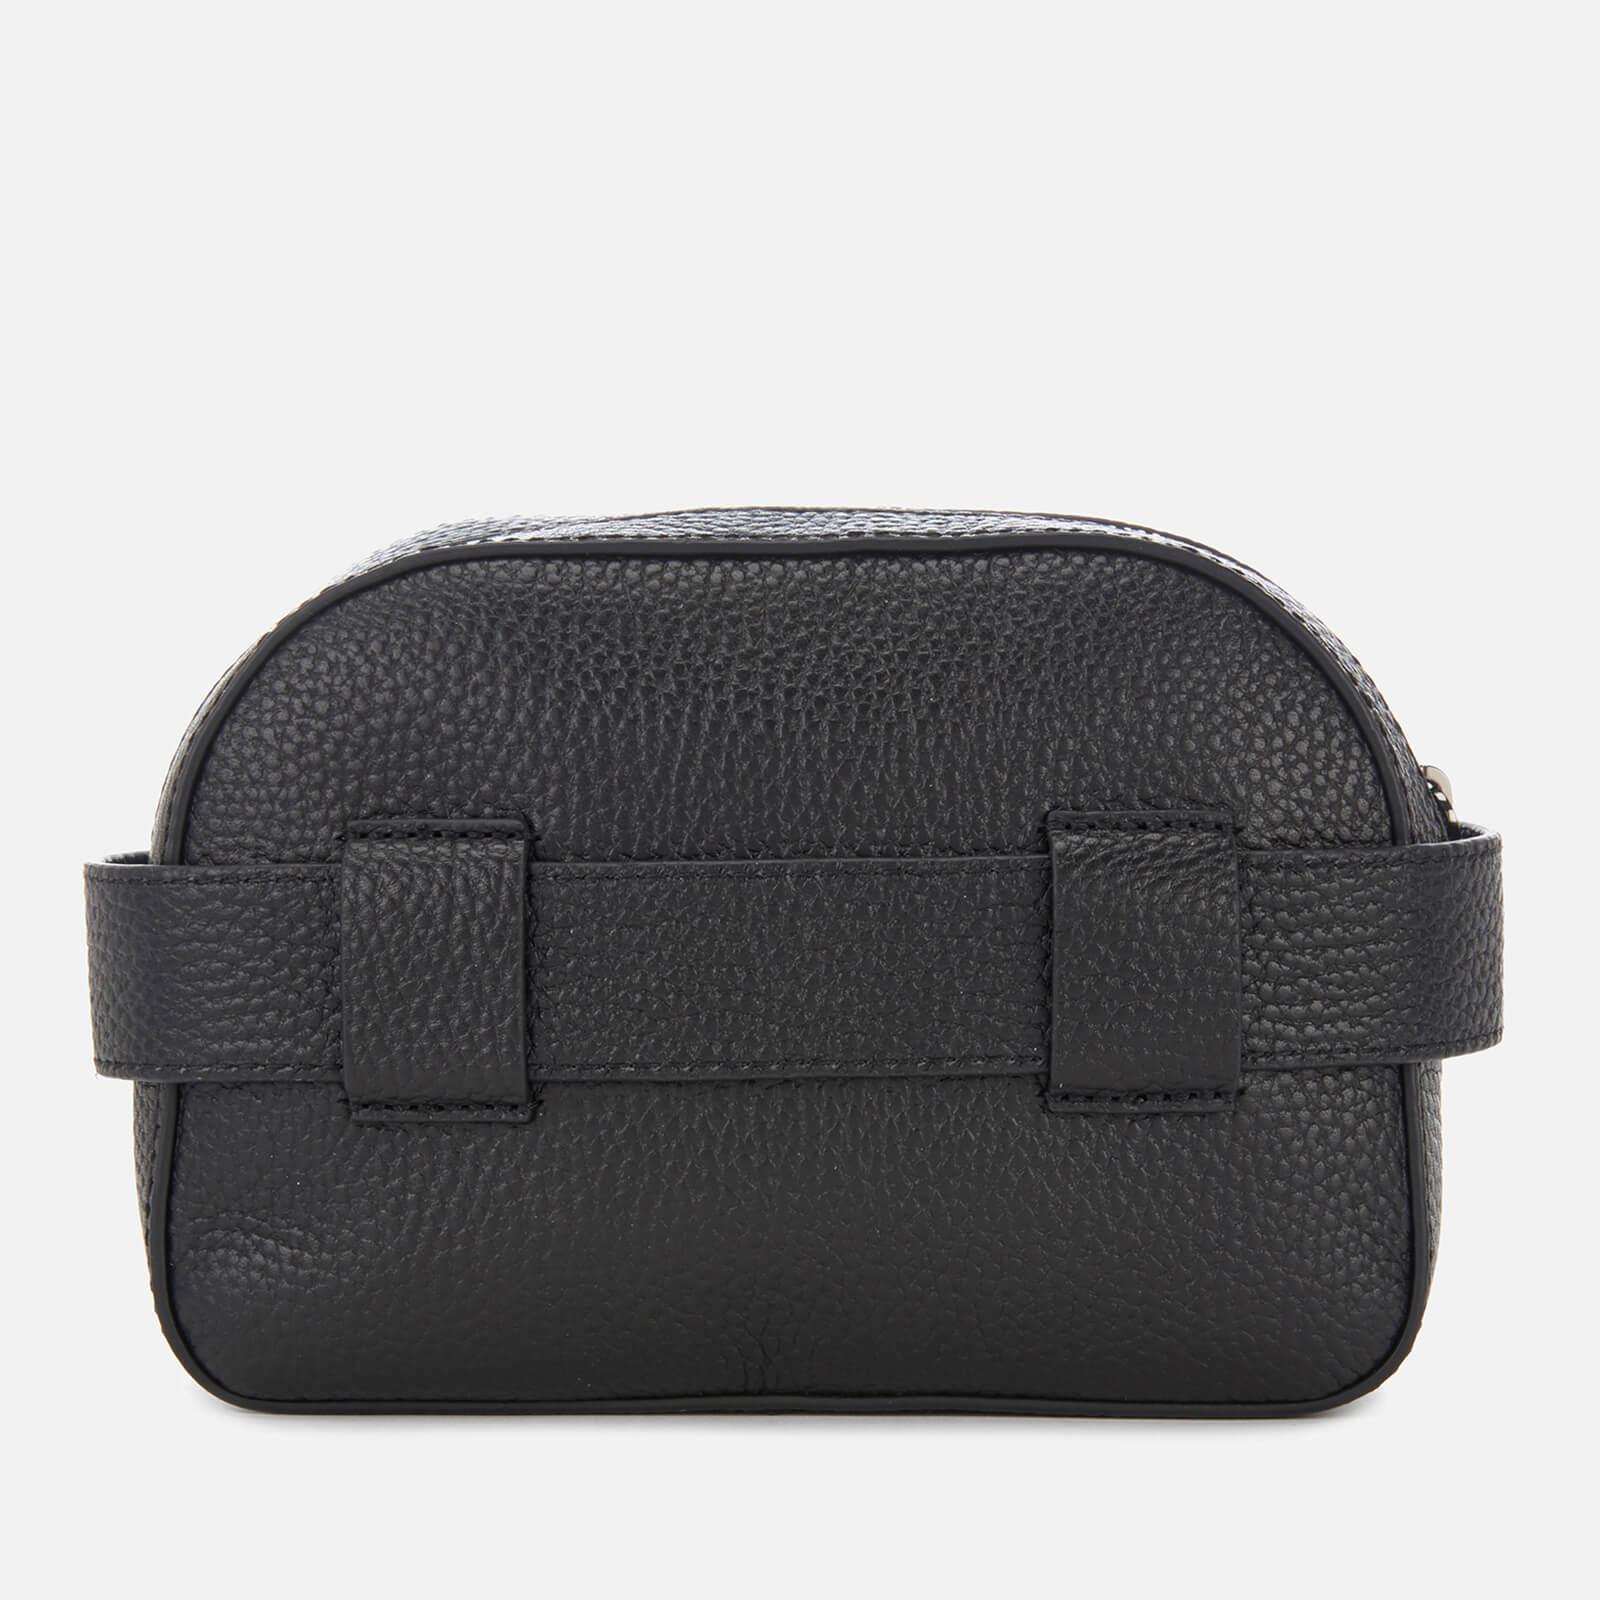 a15e459c1cb06 Ted Baker Madiiee Leather Pom Belt Bag in Black - Lyst